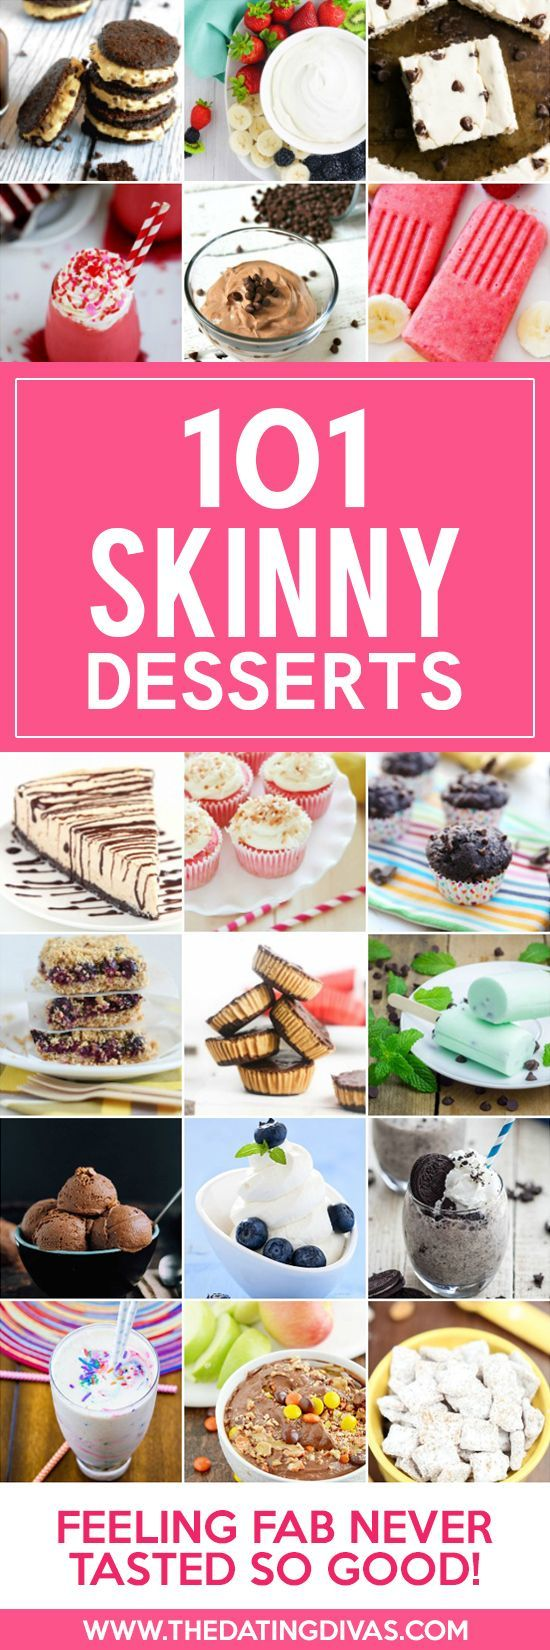 Low-calorie AND tasty desserts and treats?? I'm there!